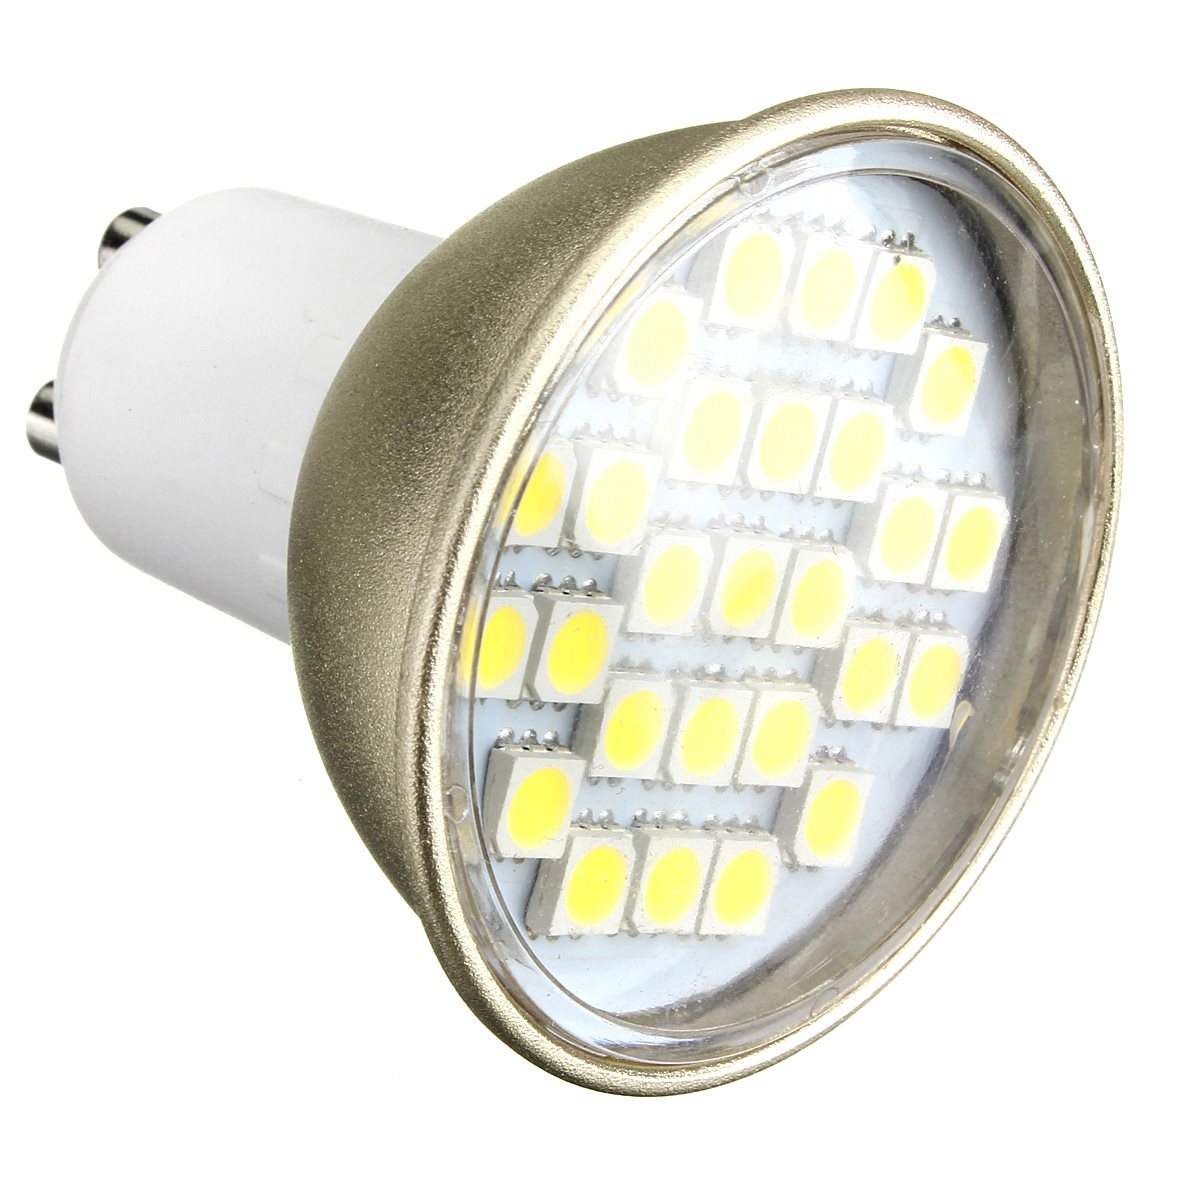 220V GU10 MR16 27 SMD LED Light 5630 5050 SMD LED Spotlight Warm Cool White Lamp Bulb